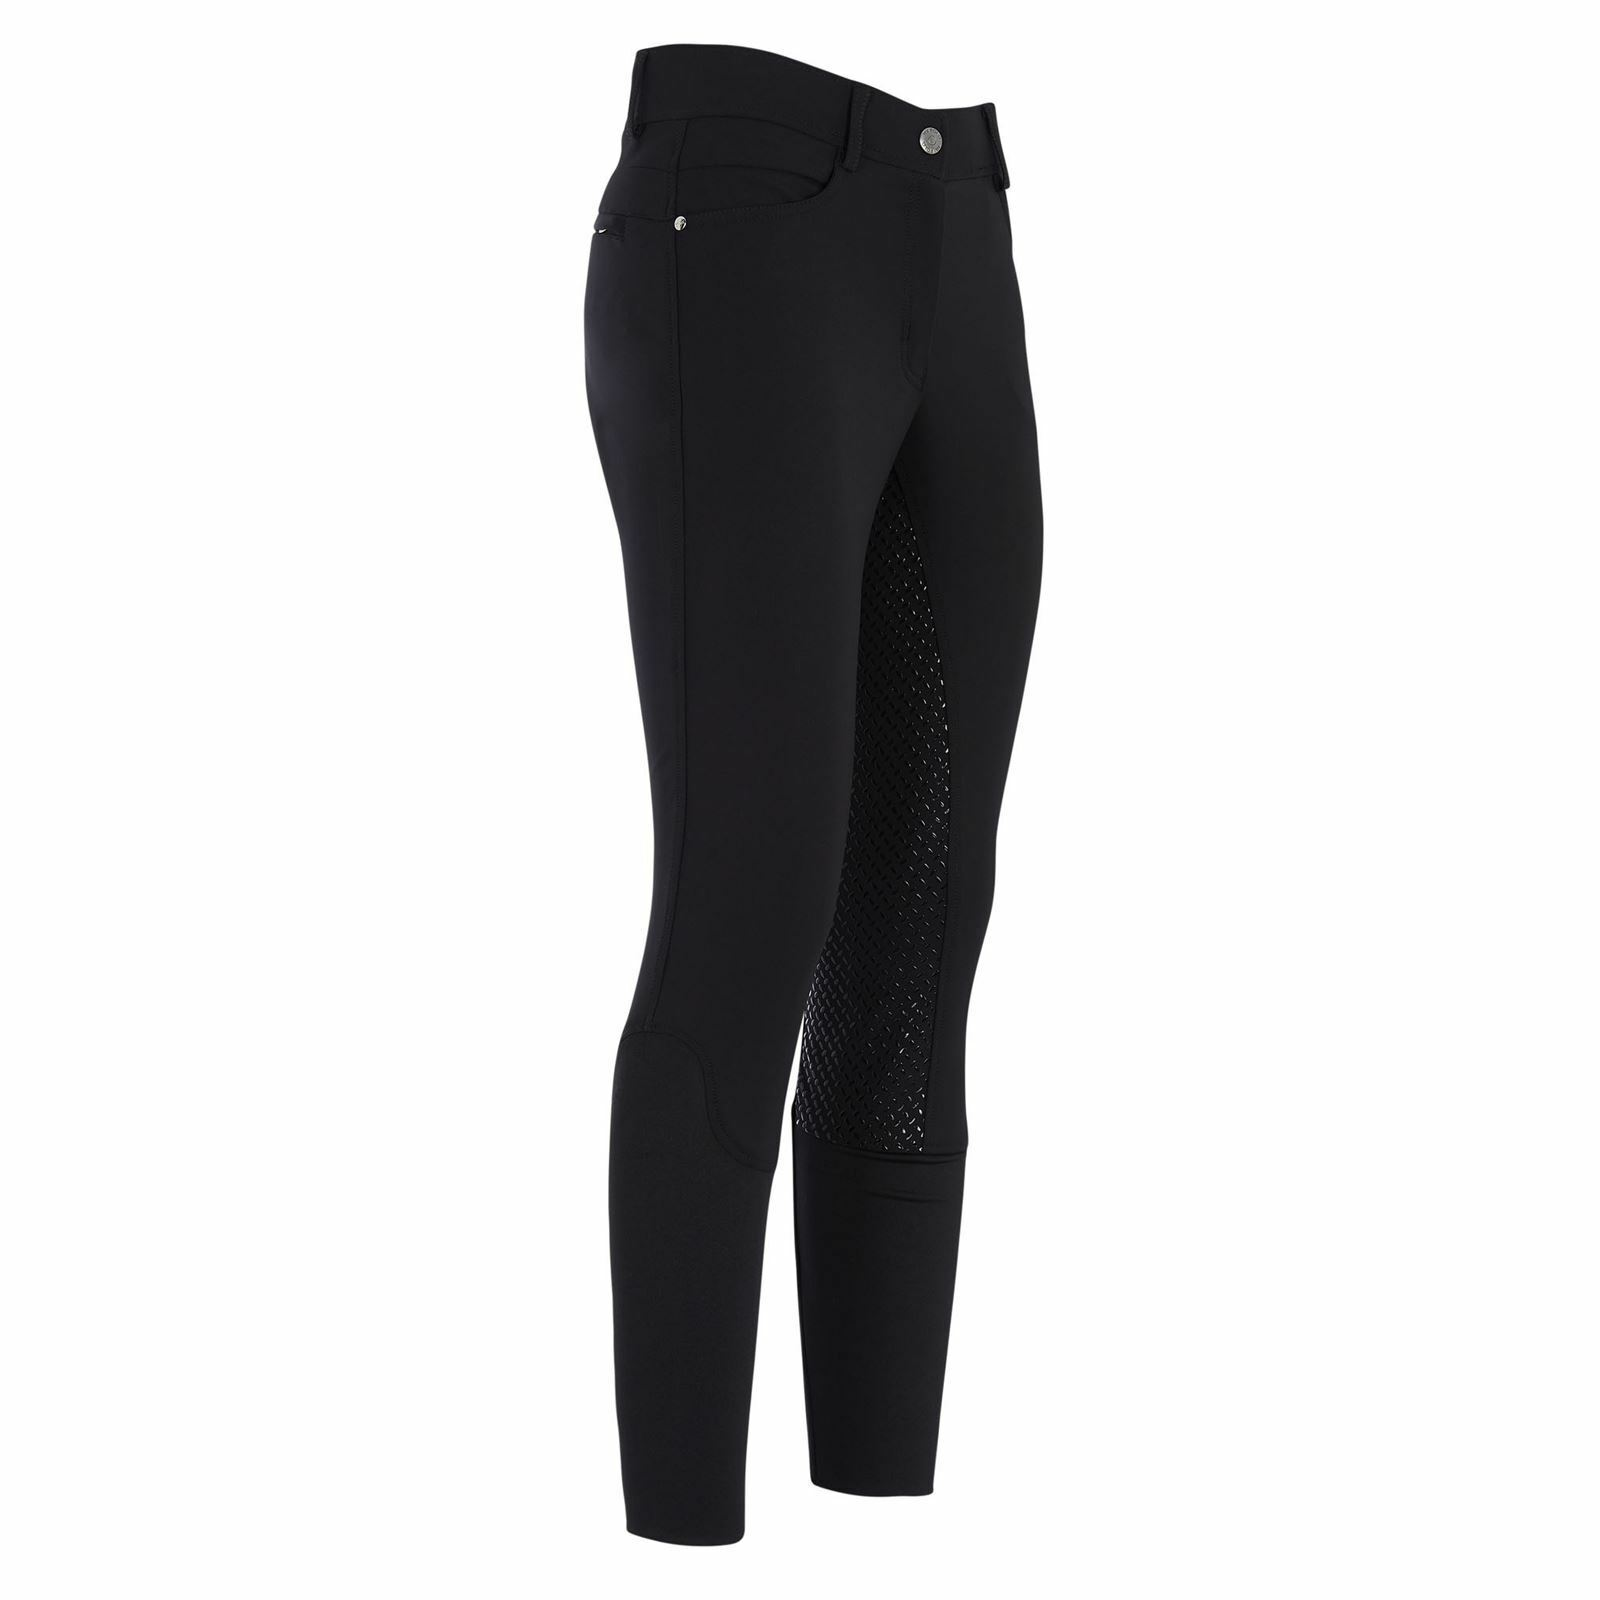 HV Polo Lara Ladies Horse Riding Full Silicone Seat County Fashionable Breeches